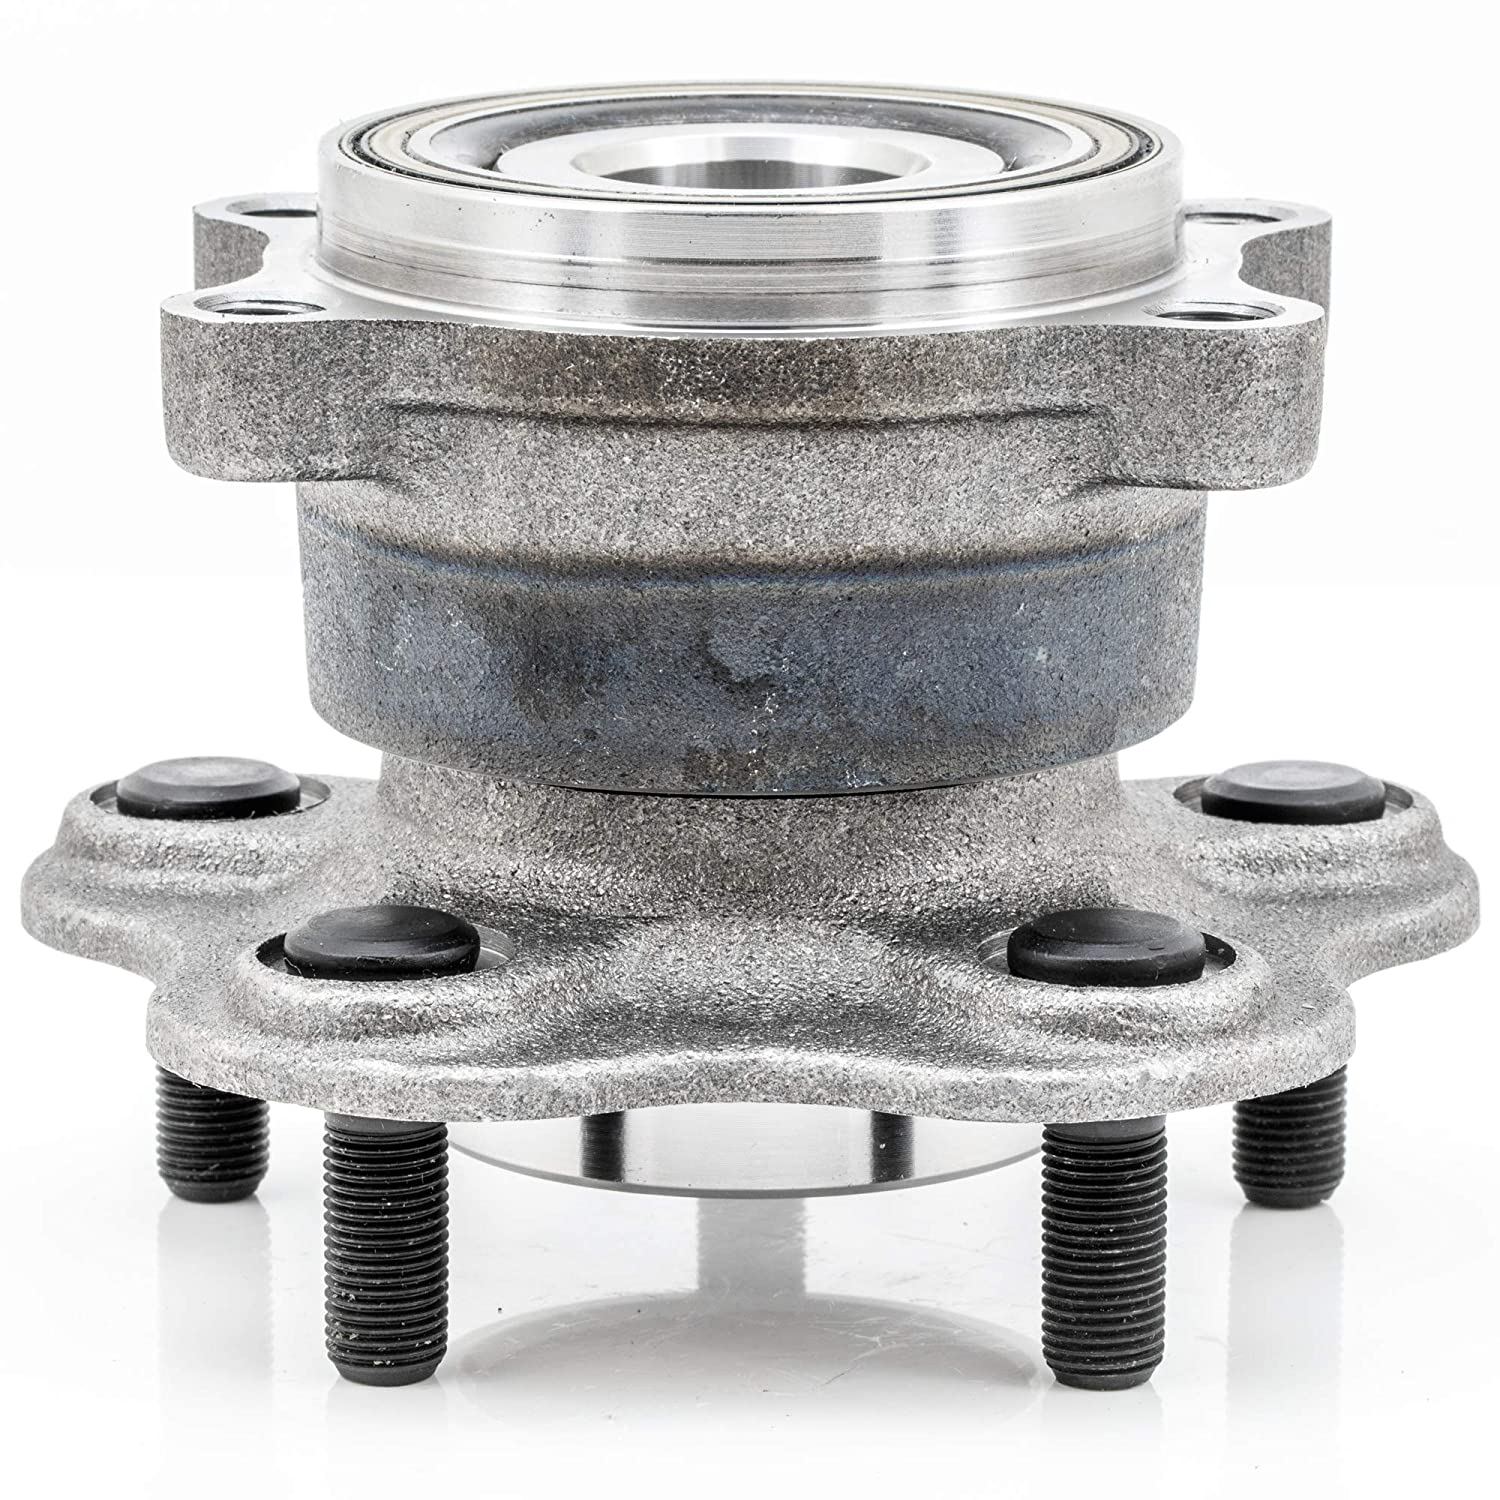 Cross Reference Dorman 950-008 2 Pieces of Wheel Hub and Bearing Assembly For 2003-2008 Infiniti FX35 3.5L Base Model Fits Rear Driver Side and Passenger Side